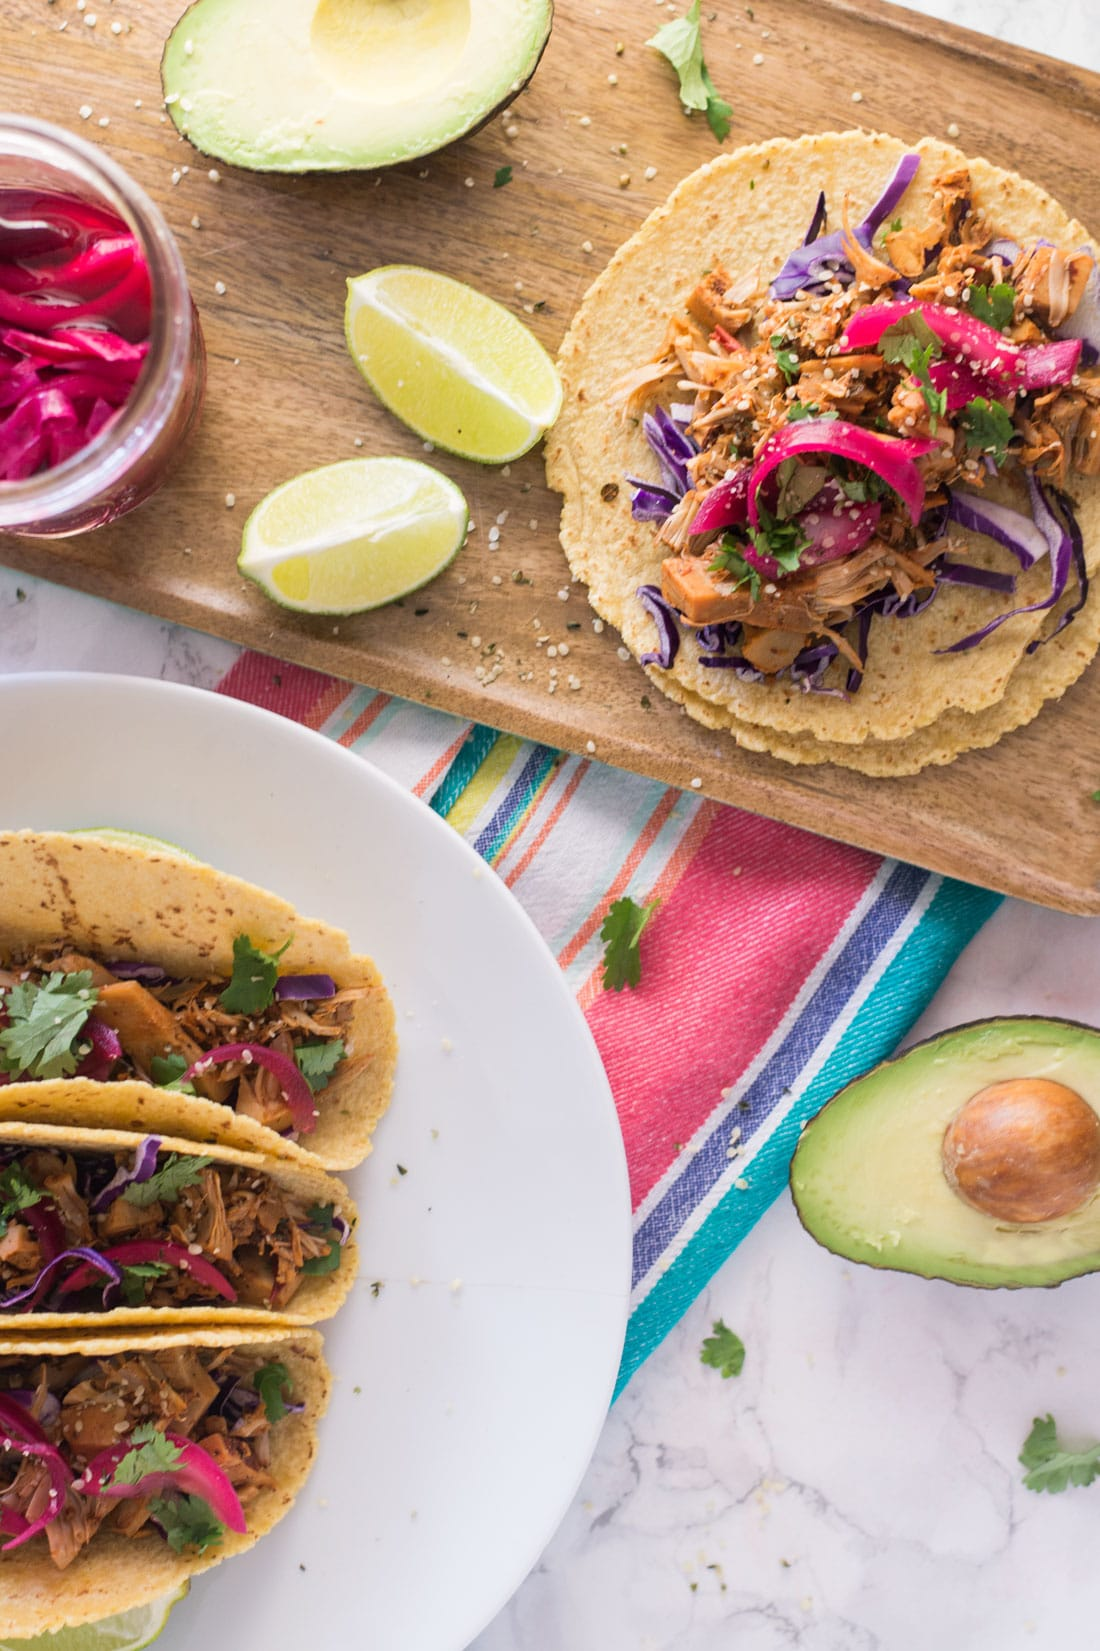 vegan jackfruit pulled pork tacos with limes, avocado, and red onions on marble counter